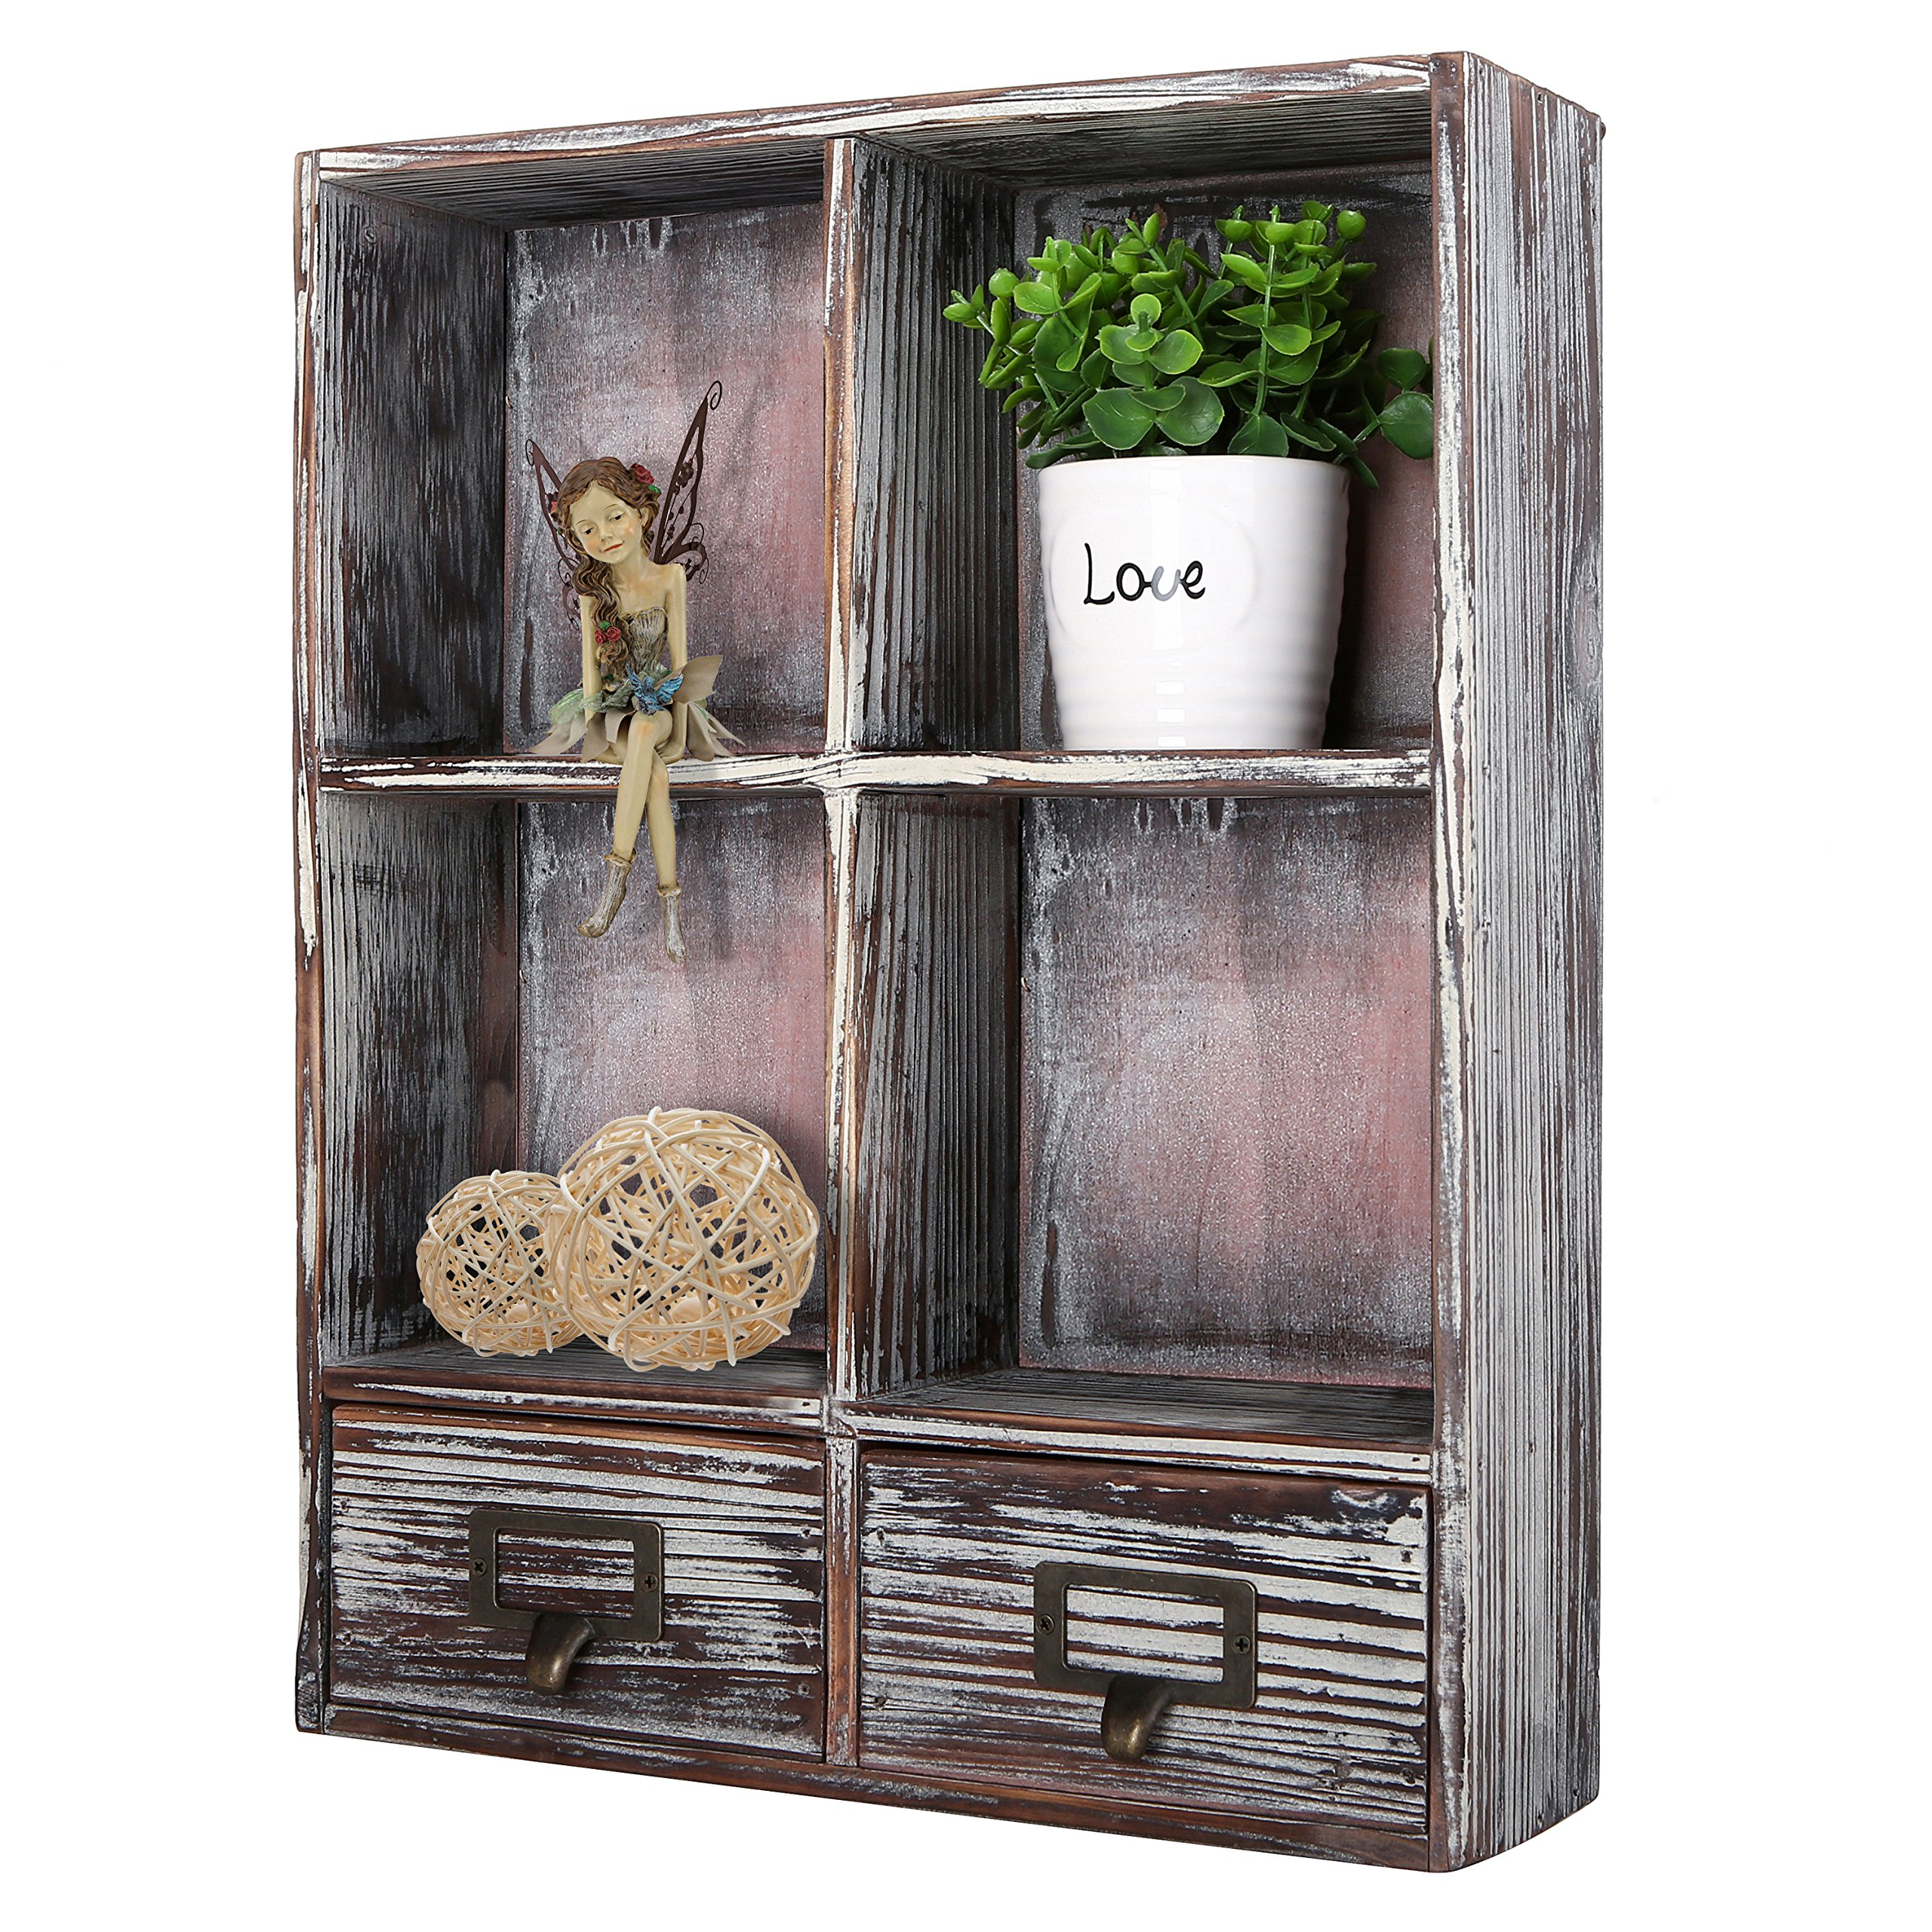 MyGift Rustic Torched Wood Wall Mounted Shadow Box w/Cubby Shelving, 2 Drawers and Label Holders, Dark Brown by MyGift